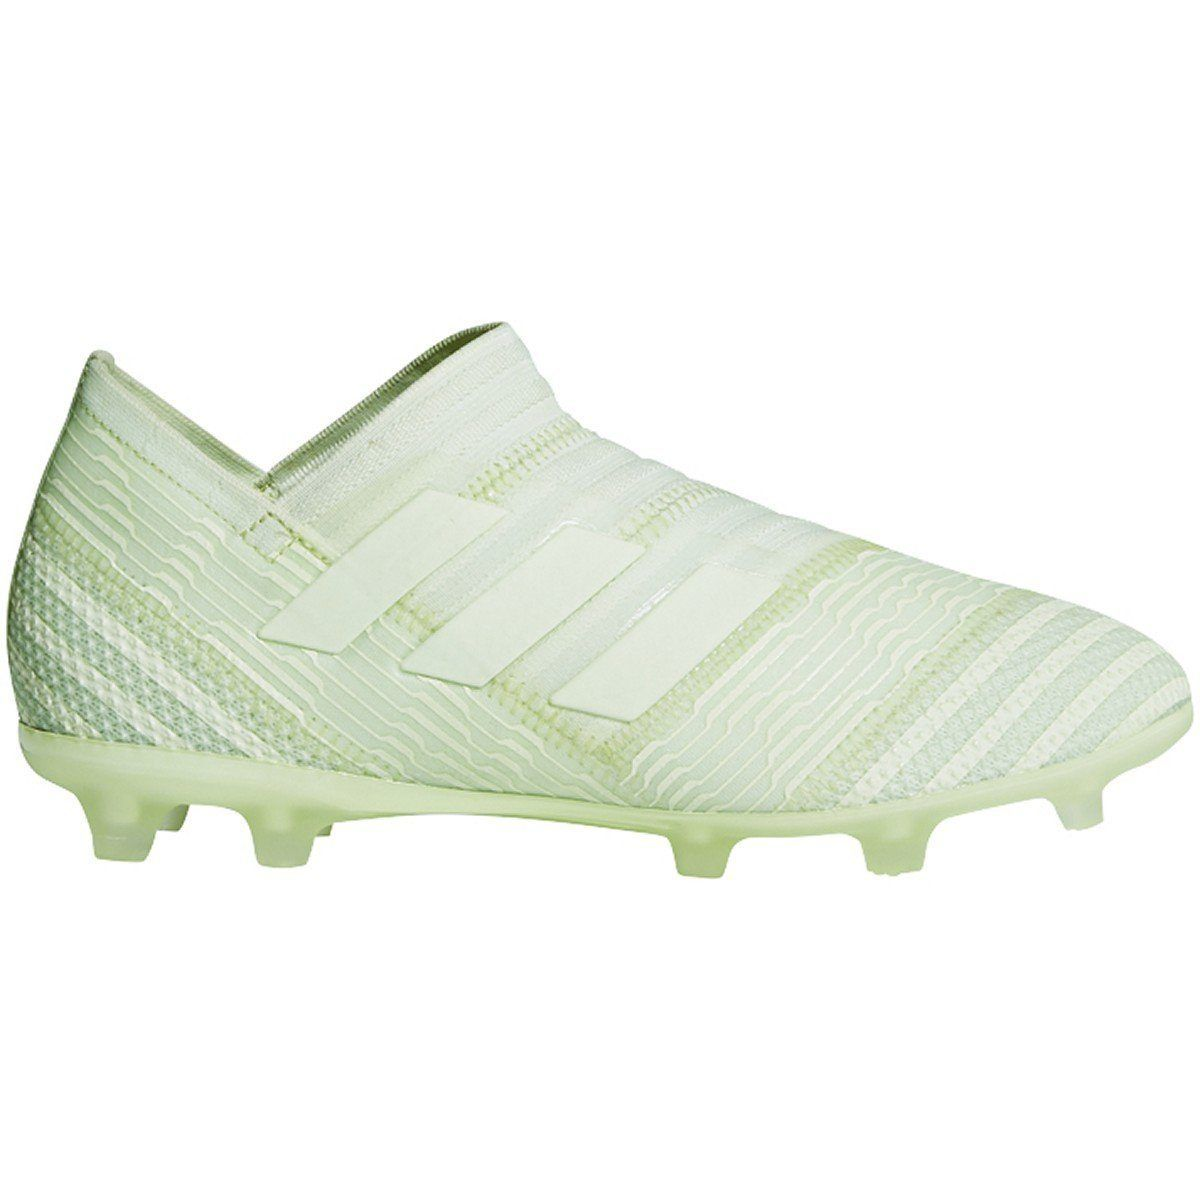 Adidas Youth Nemeziz 17 360 Agility Fg Boots Cp9124 In 2020 Youth Cleats Football Boots Youth Soccer Shoes